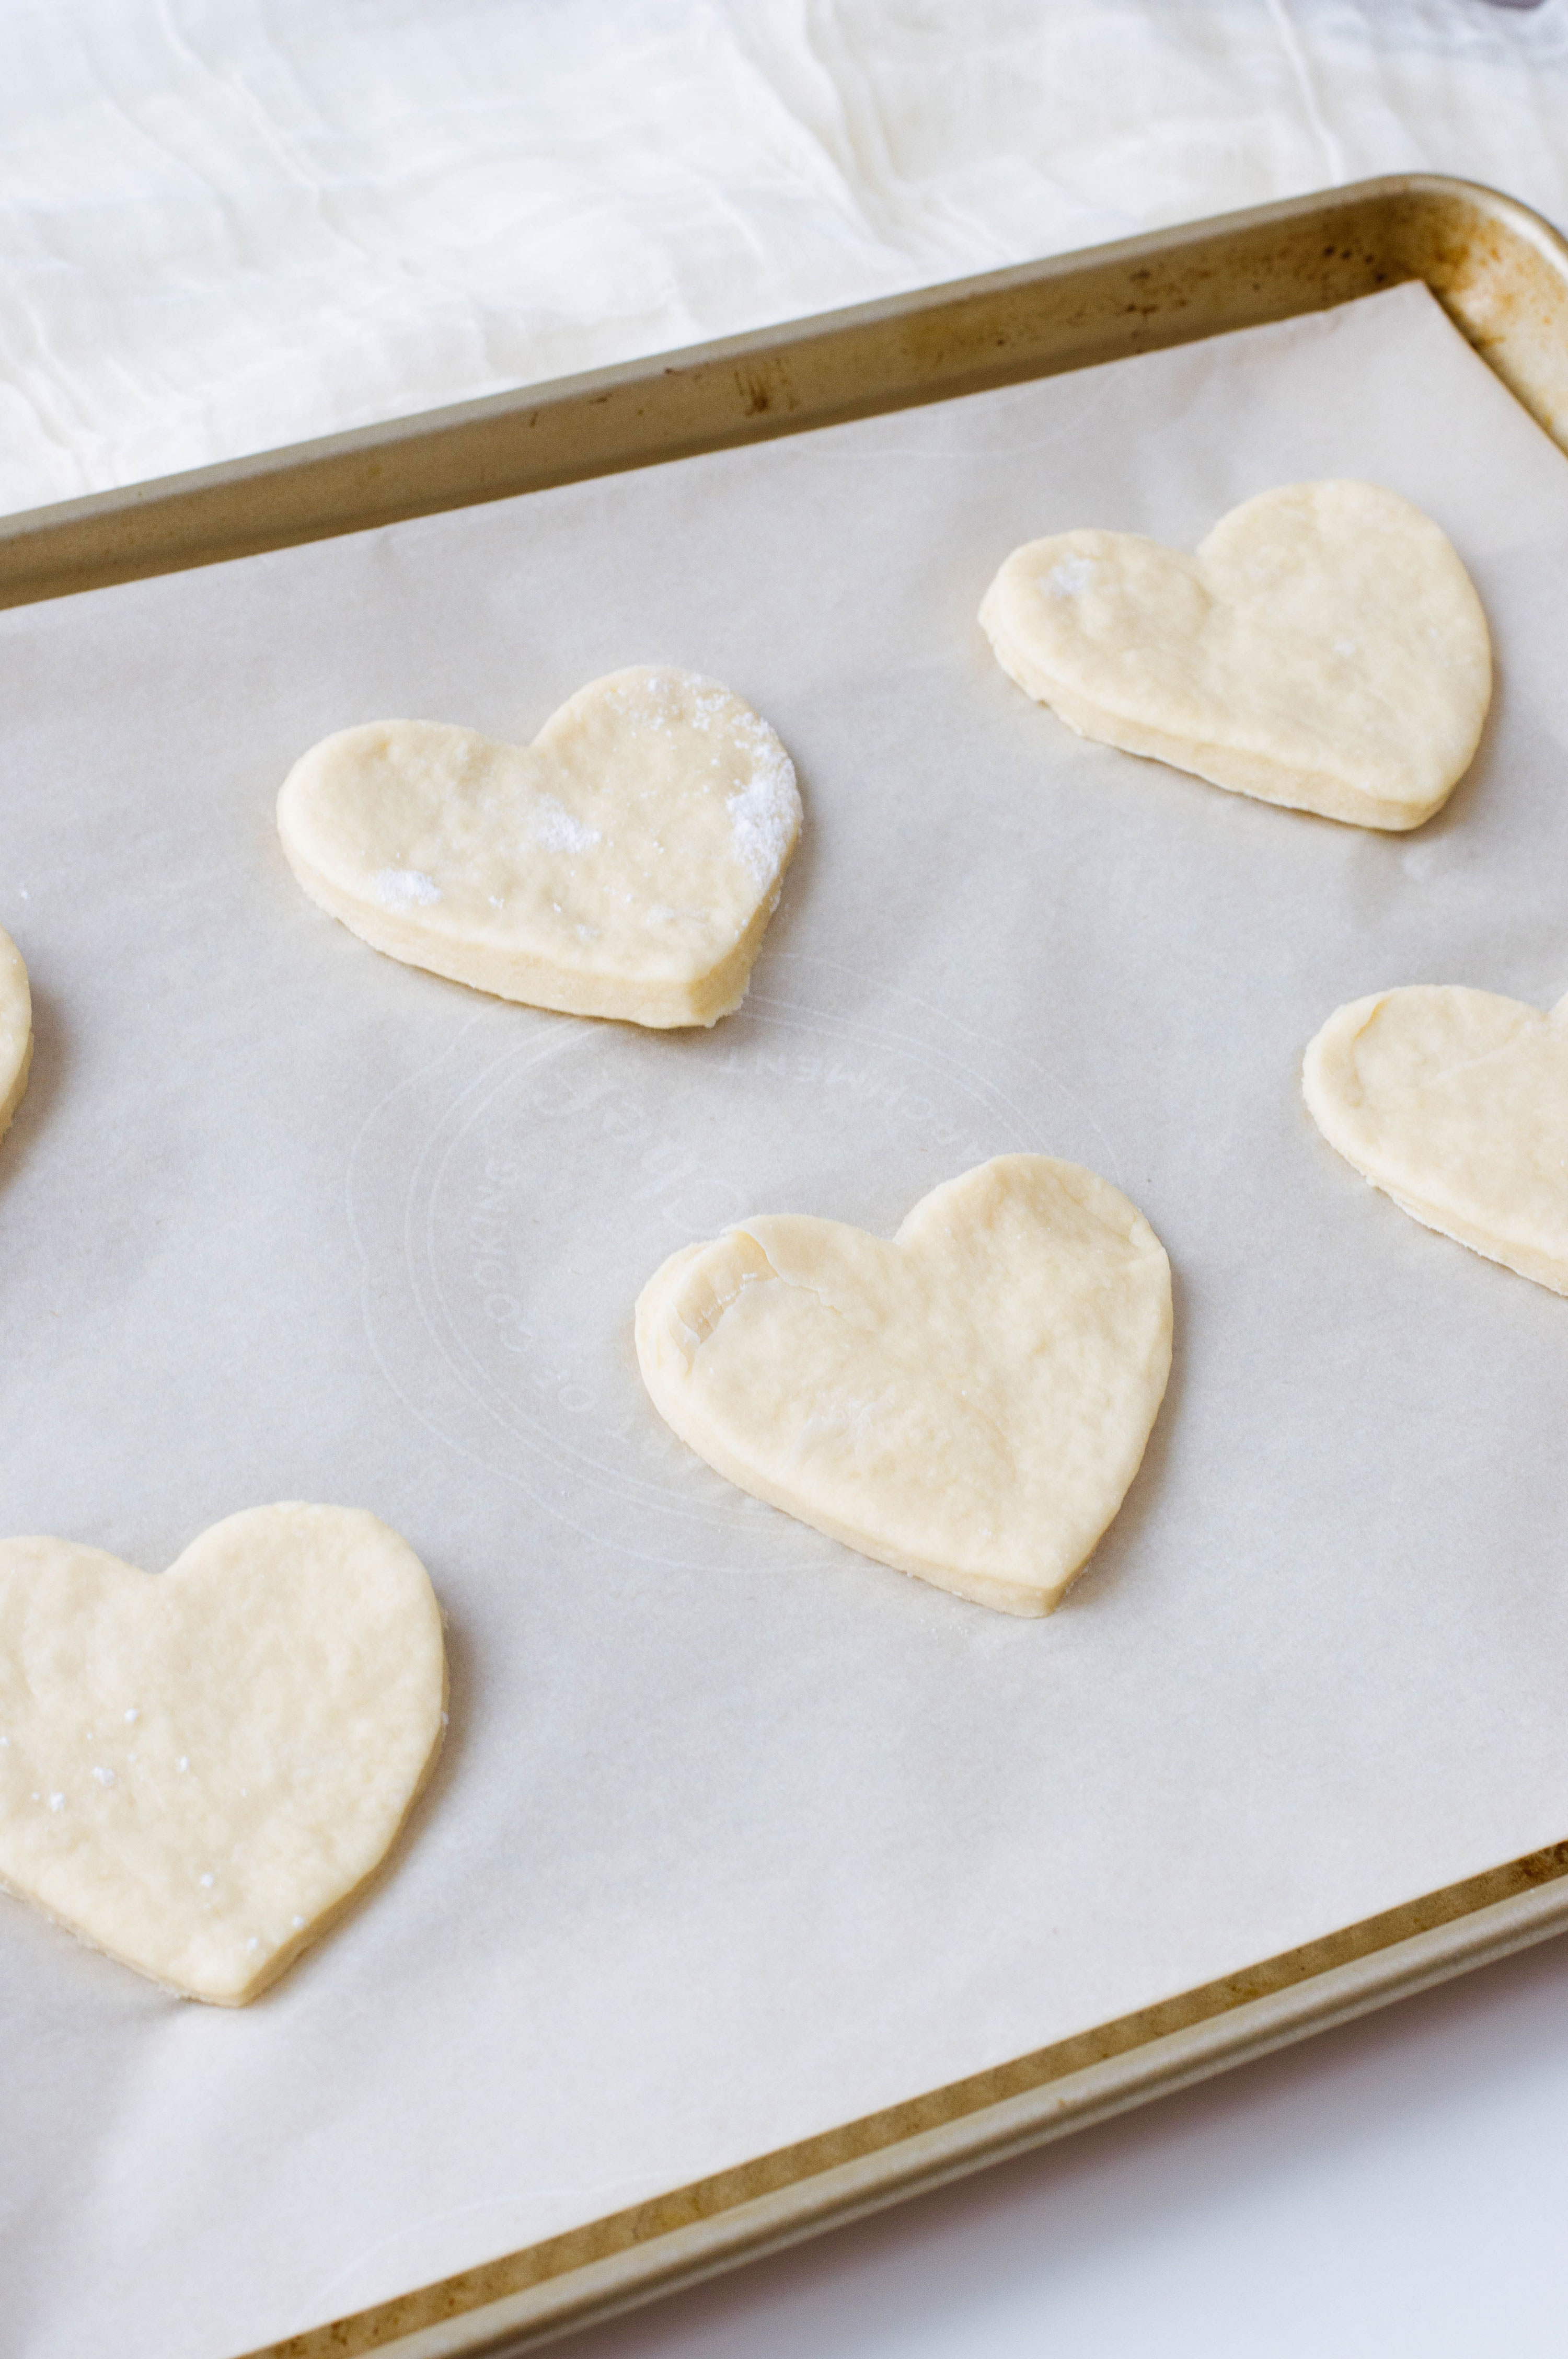 These homemade pizza pockets are in the shape of a heart - so perfect for Valentine's Day. And psst: they're easy to make, too!